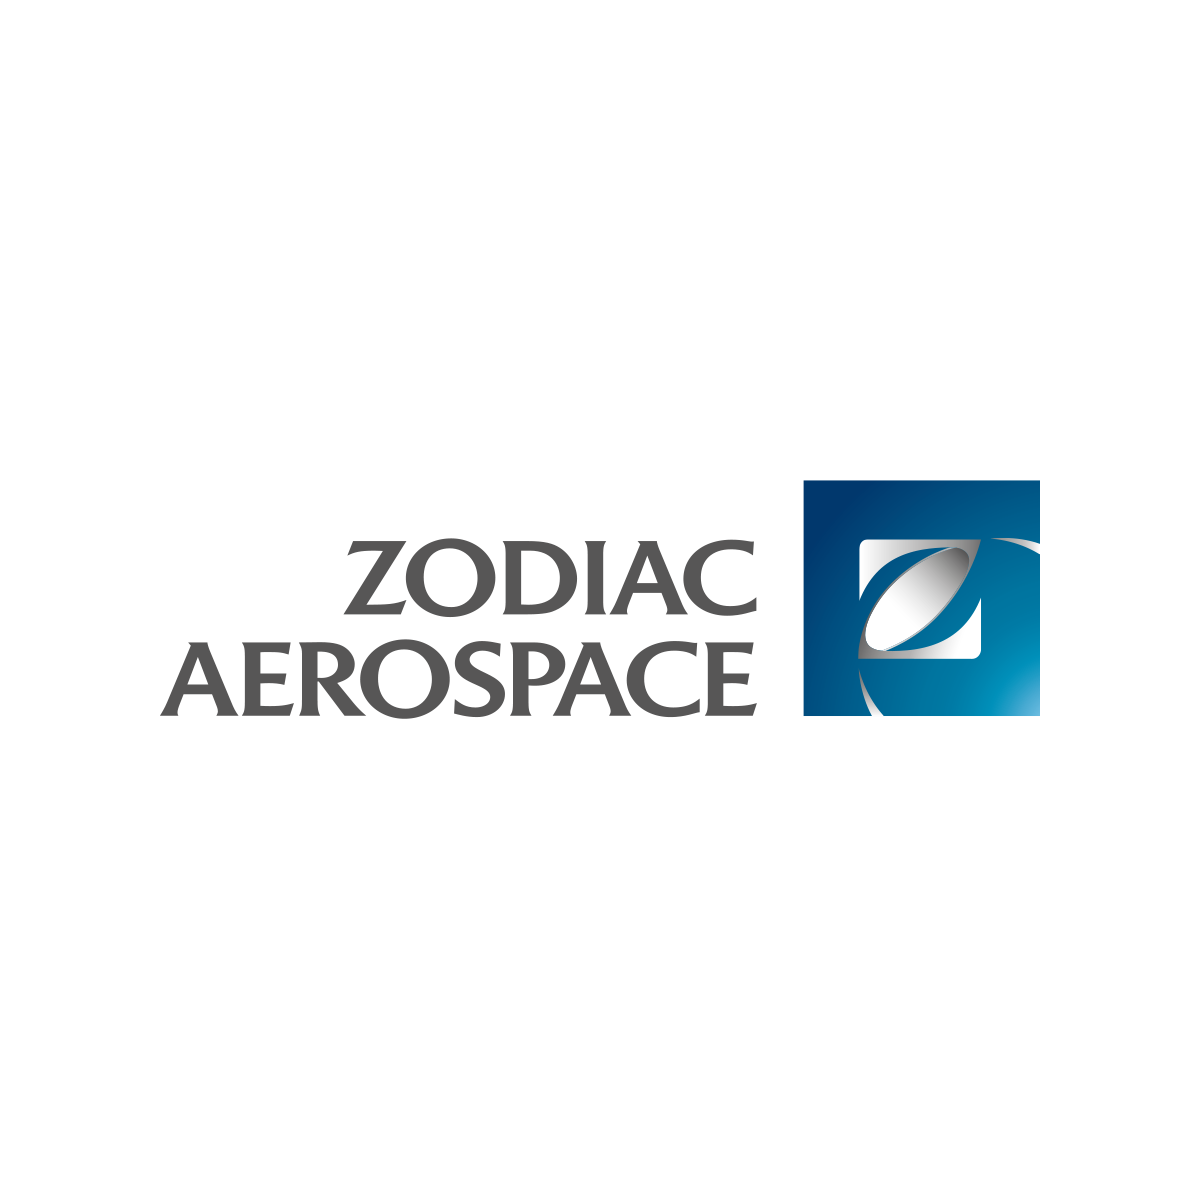 ZODIAC Data Systems GmbH